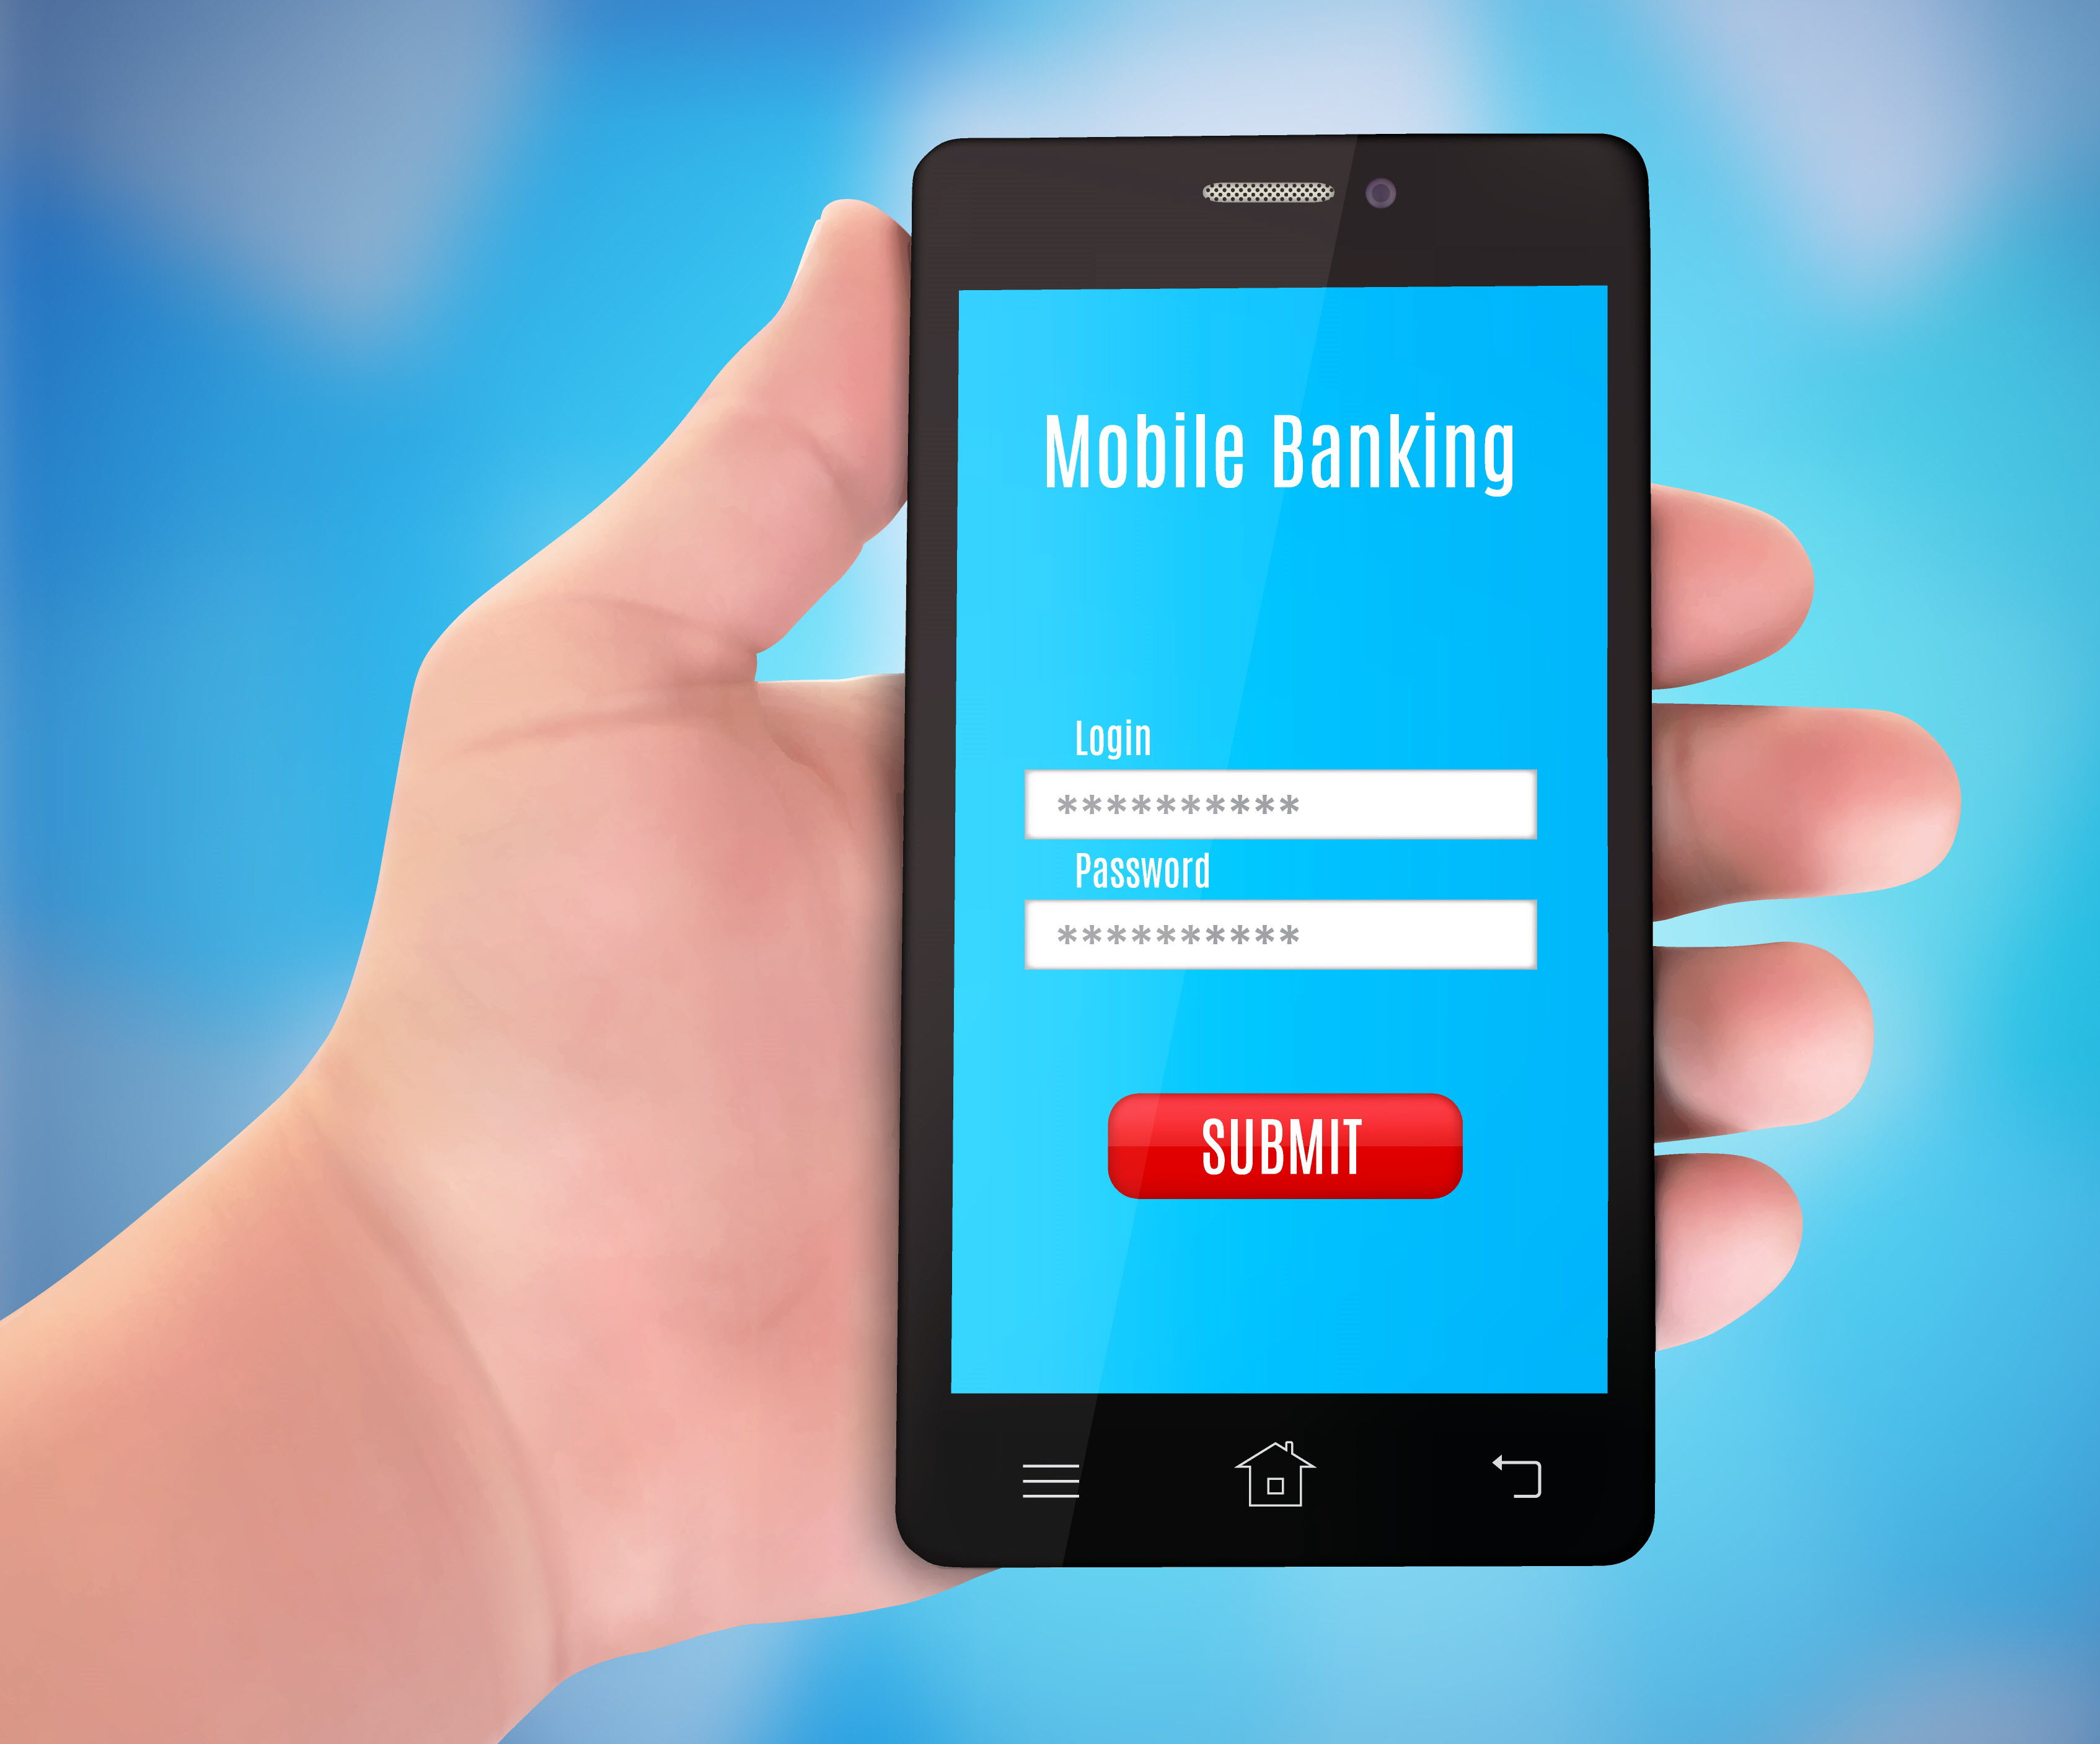 Mobile banking service